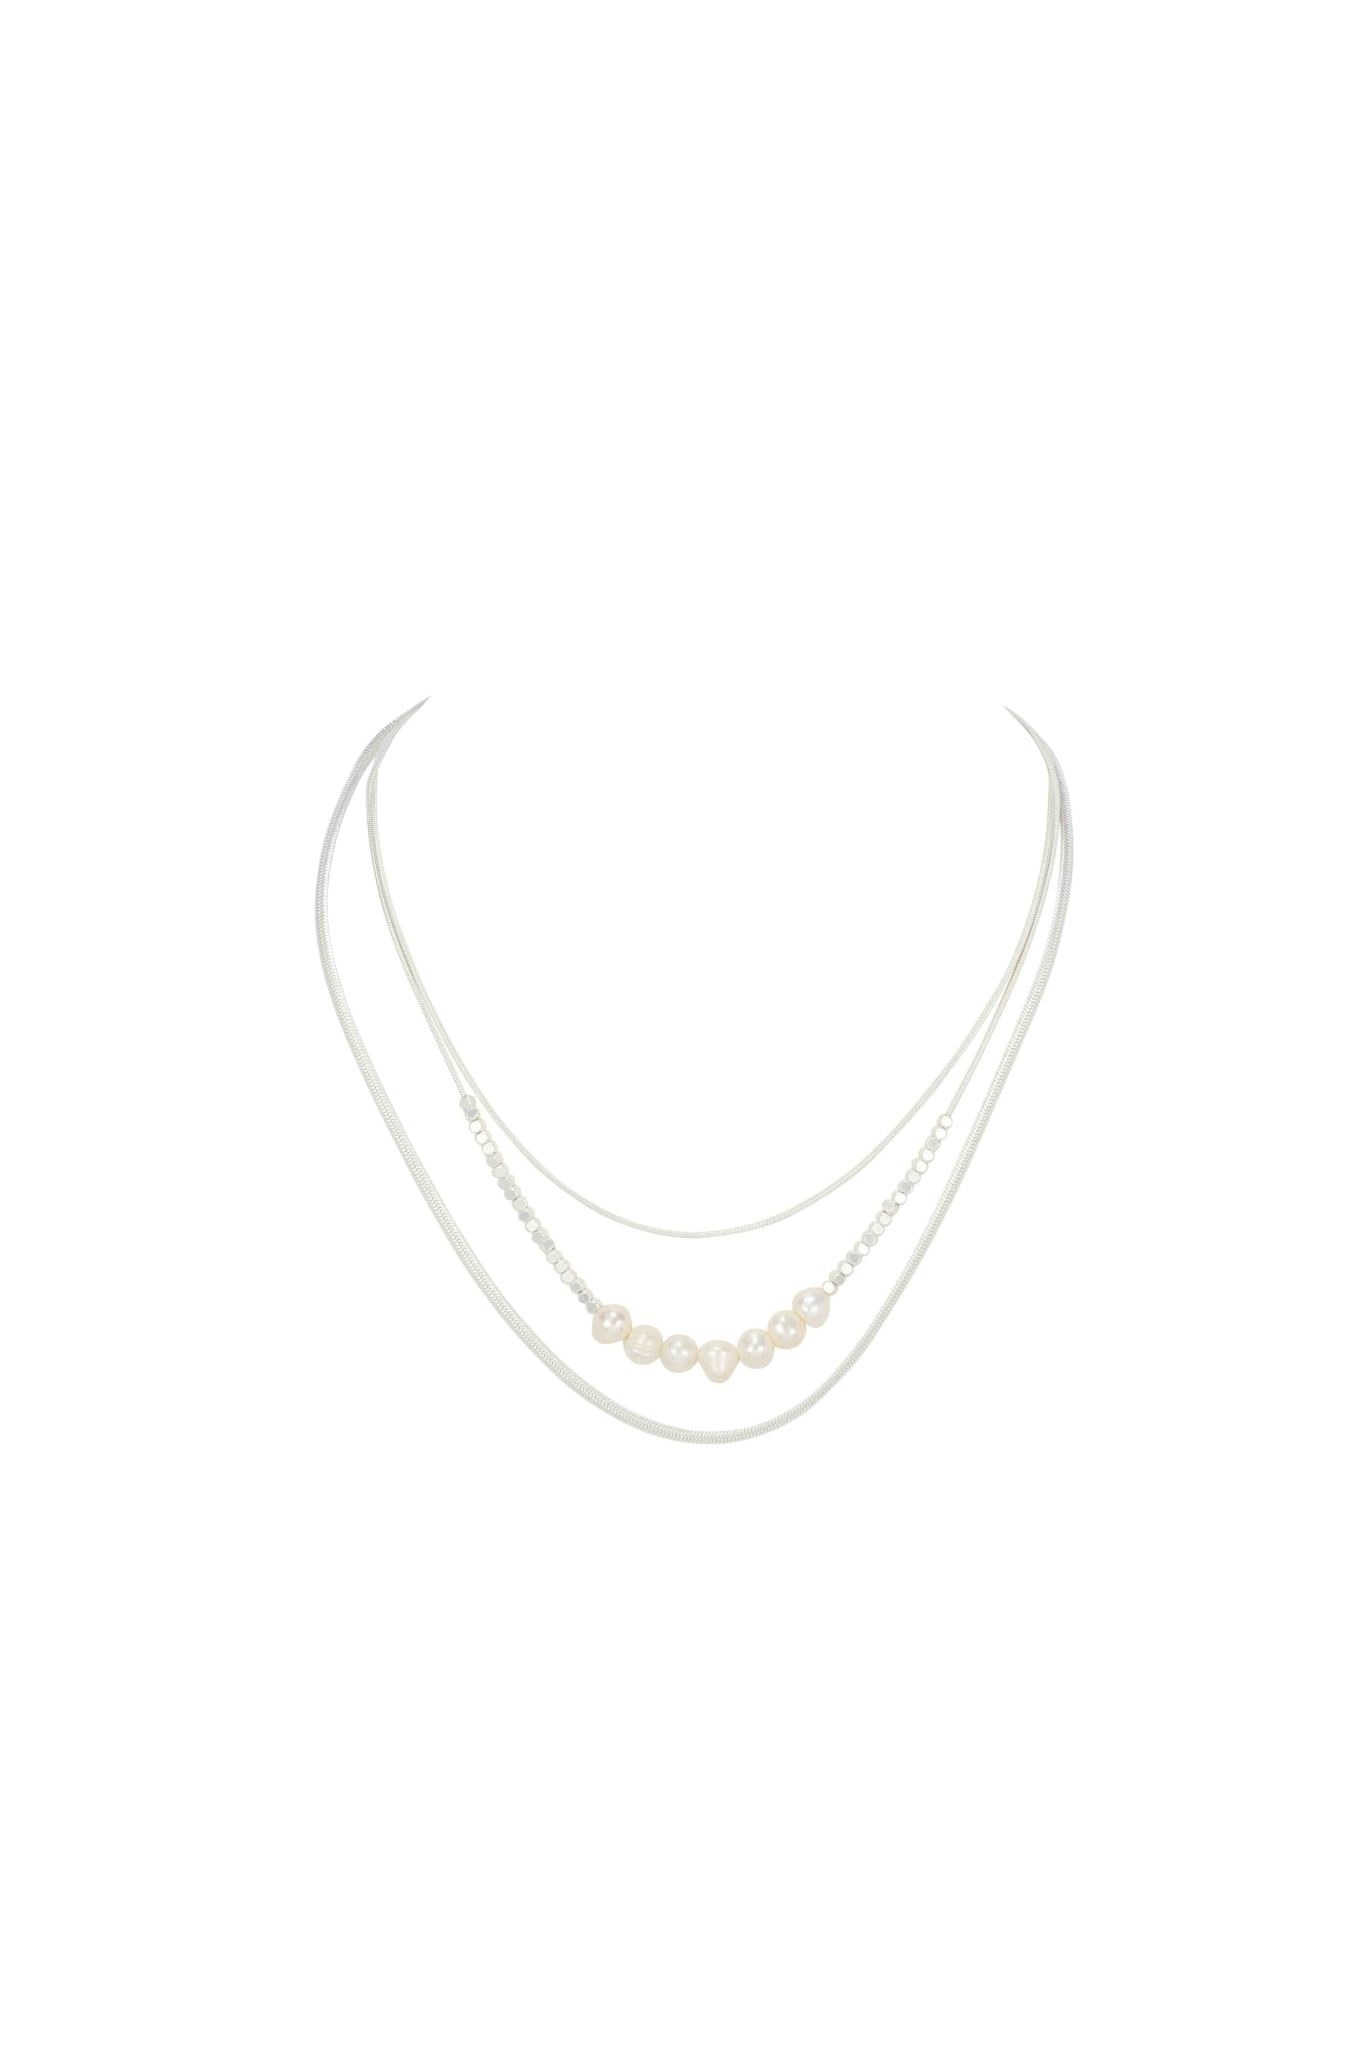 Matte Silver and Pearl Necklace